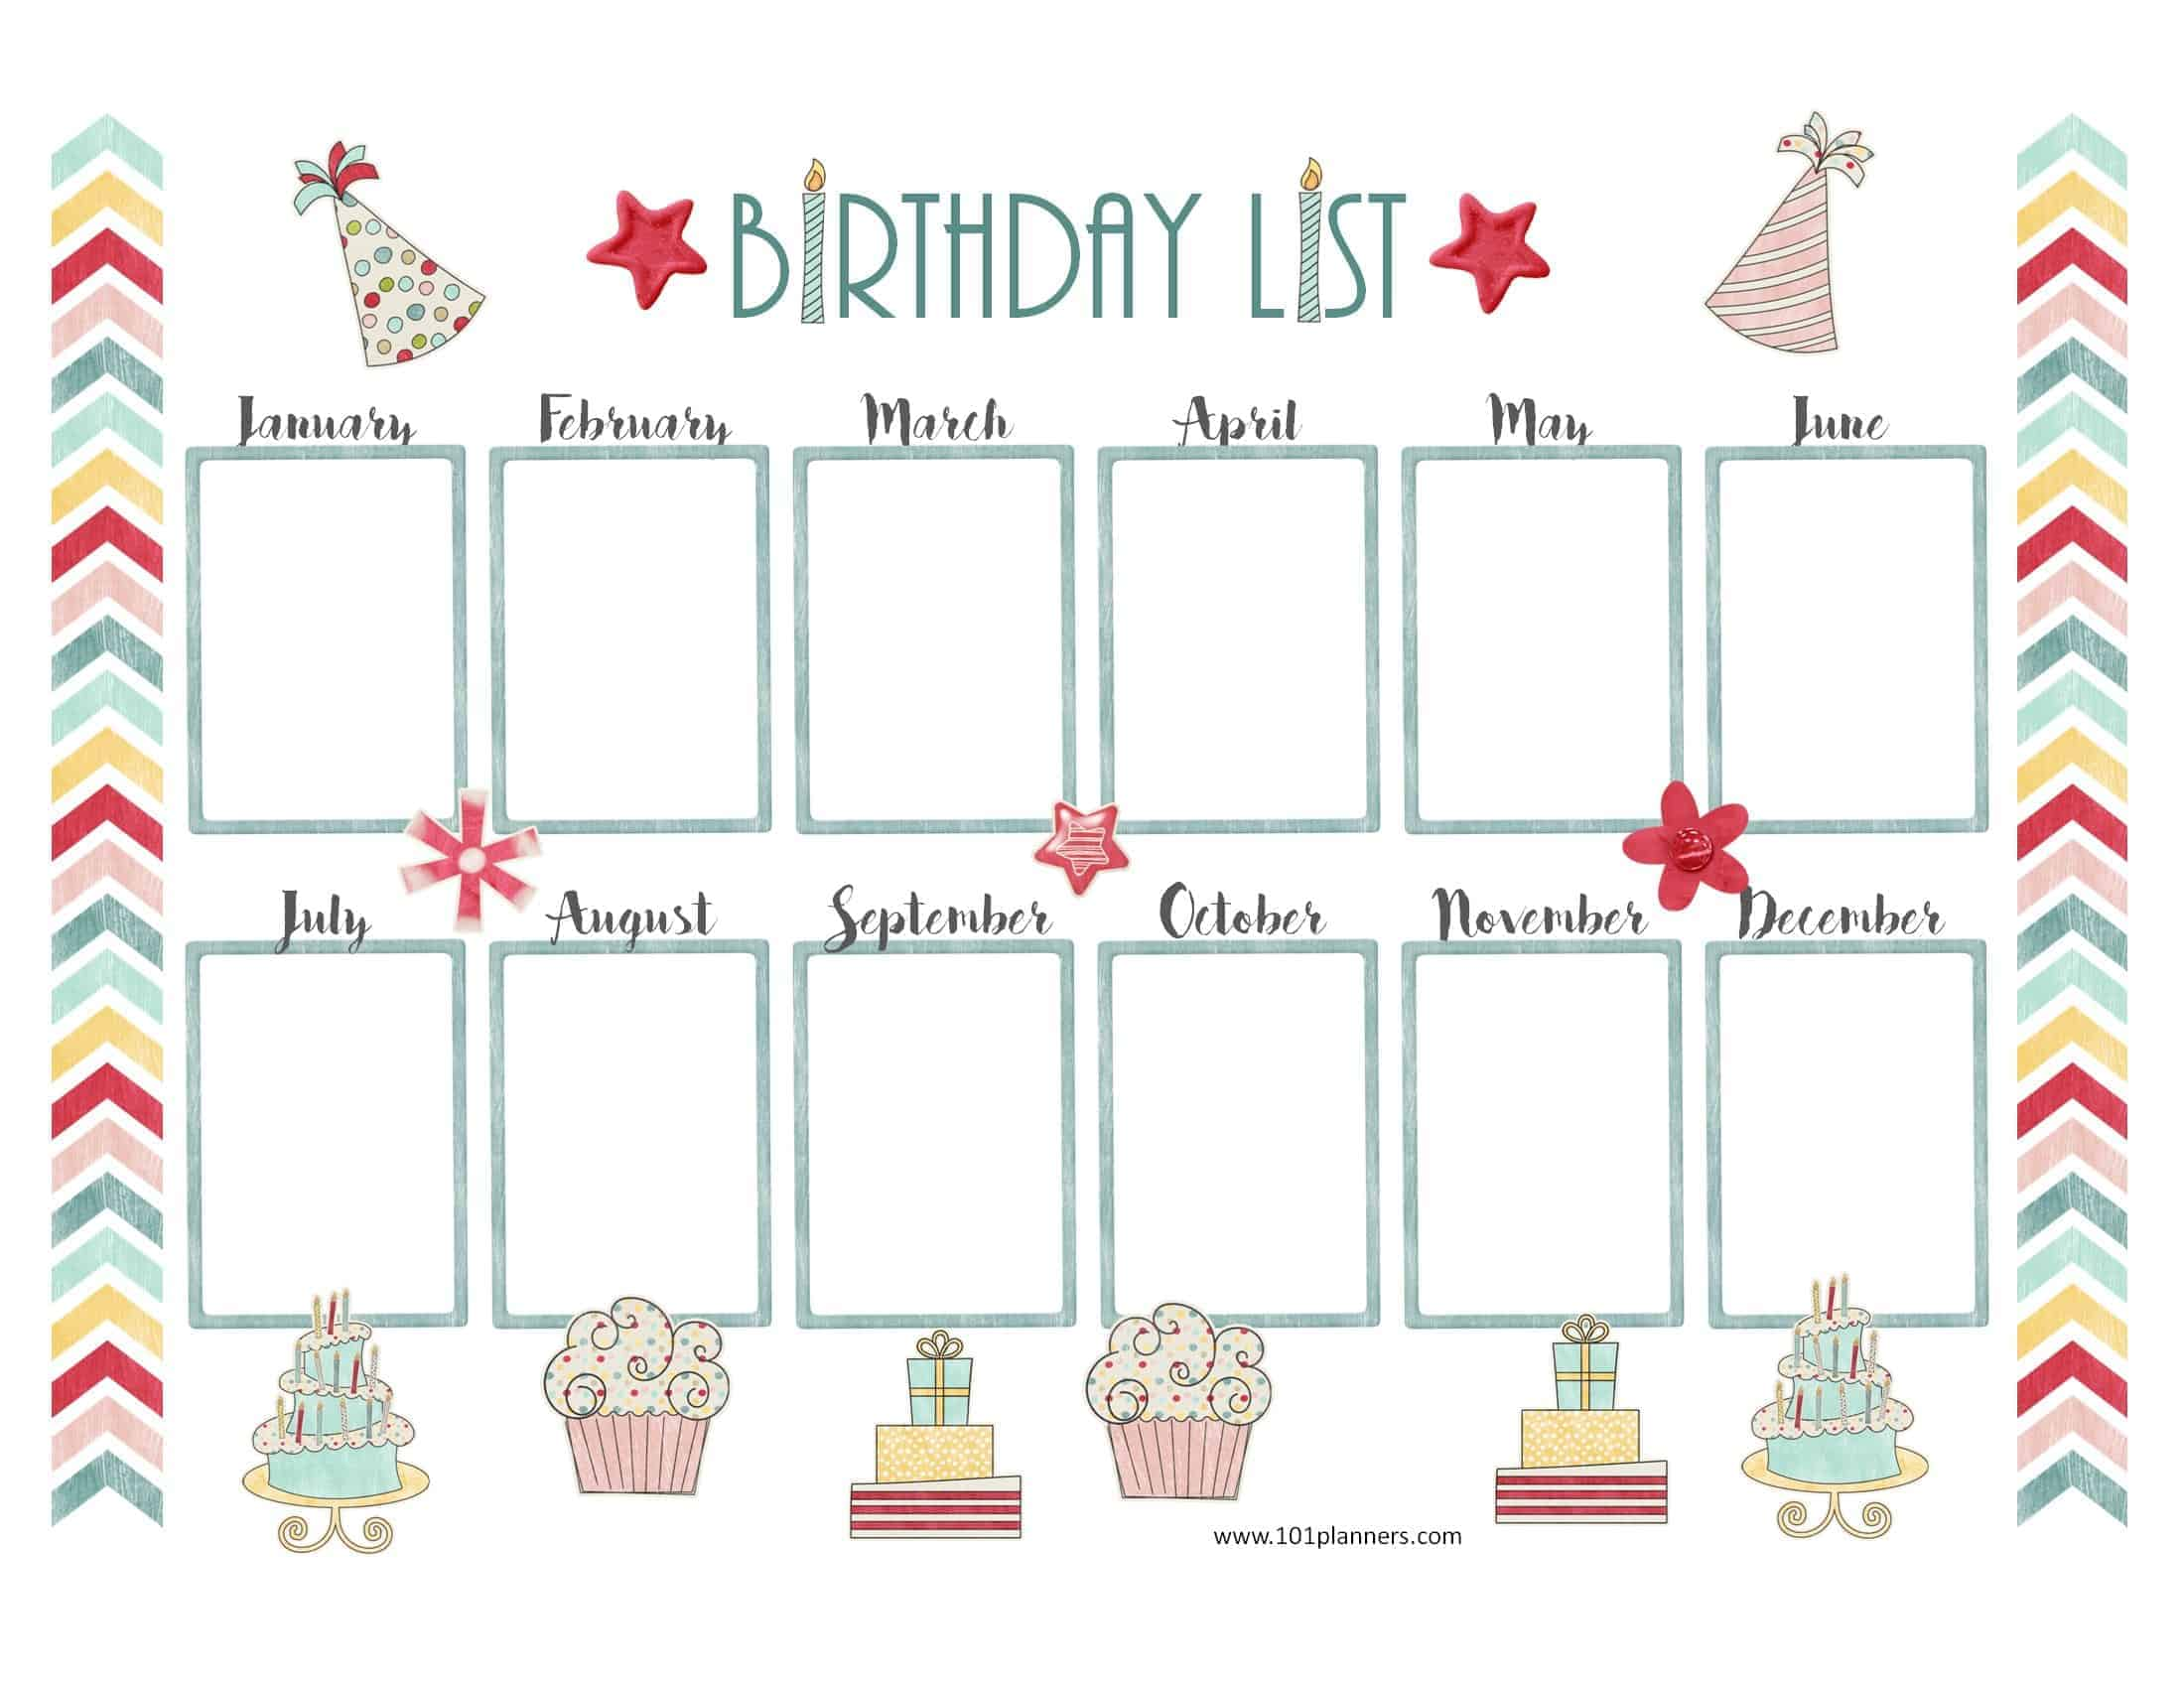 photo about Free Printable Birthday Calendar identify Free of charge Birthday Calendar Printable Customizable Lots of